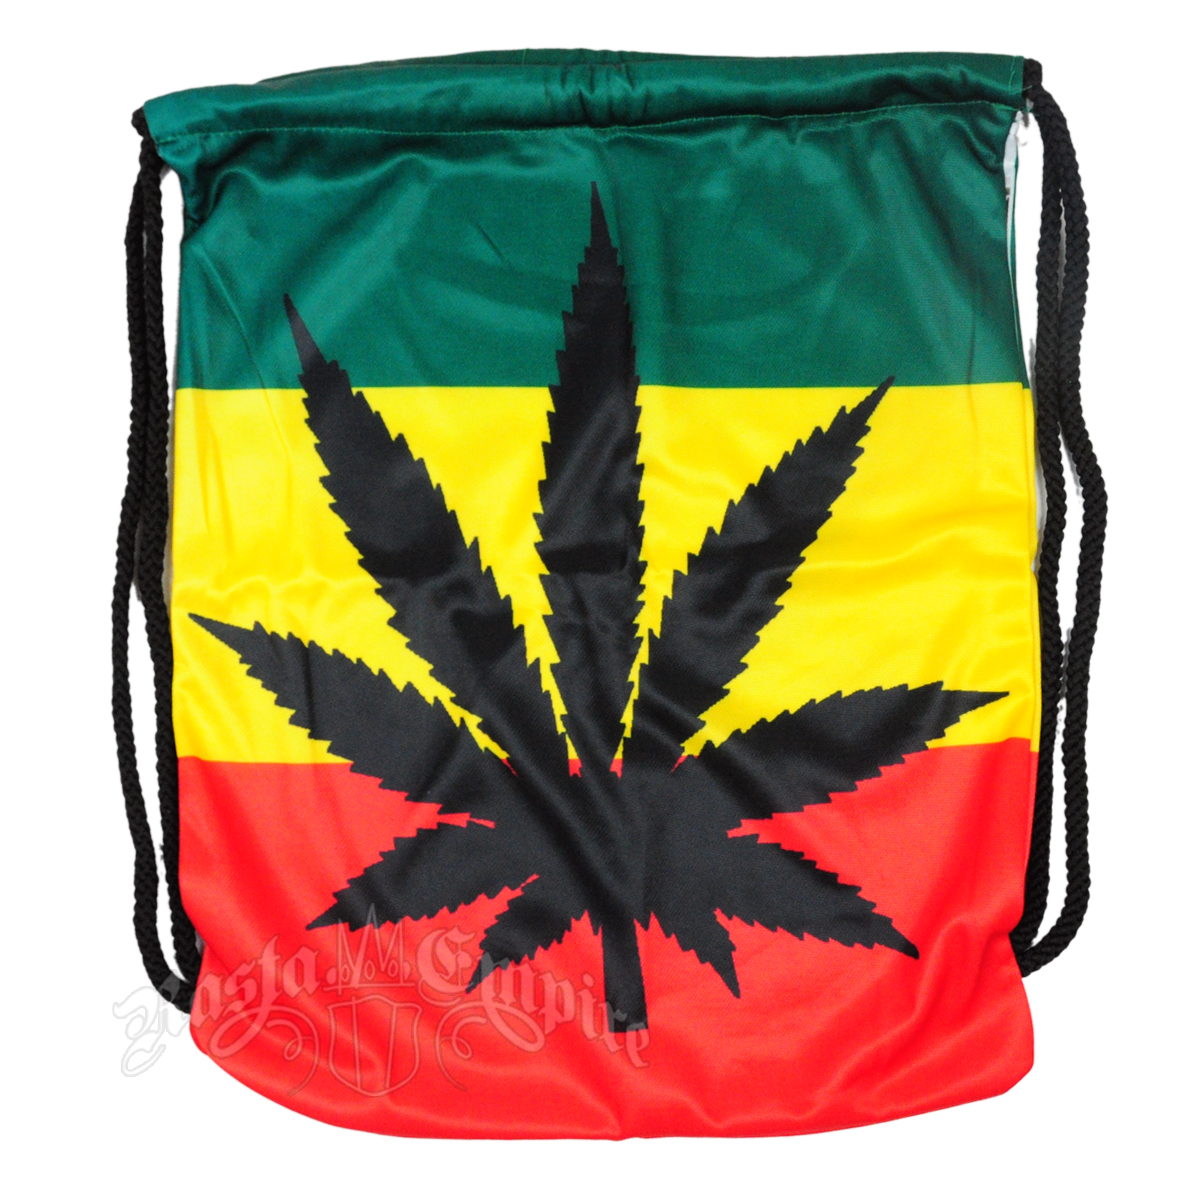 home decor store ideas with P 4365 Rasta Marijuana Leaf Cinch Backpack on Cinderella Silhouette besides P 4365 Rasta Marijuana Leaf Cinch Backpack moreover Decorating Your Home Design Ideas With Best Luxury Simple Modern Kitchen Cabi s And Be e Perfect With Luxury Simple Modern Kitchen Cabi s For Modern Home And Interior Design in addition 109461 Birthday Cake For A Tennis Player furthermore Ingenious Ways Hide Things Plain Sight.